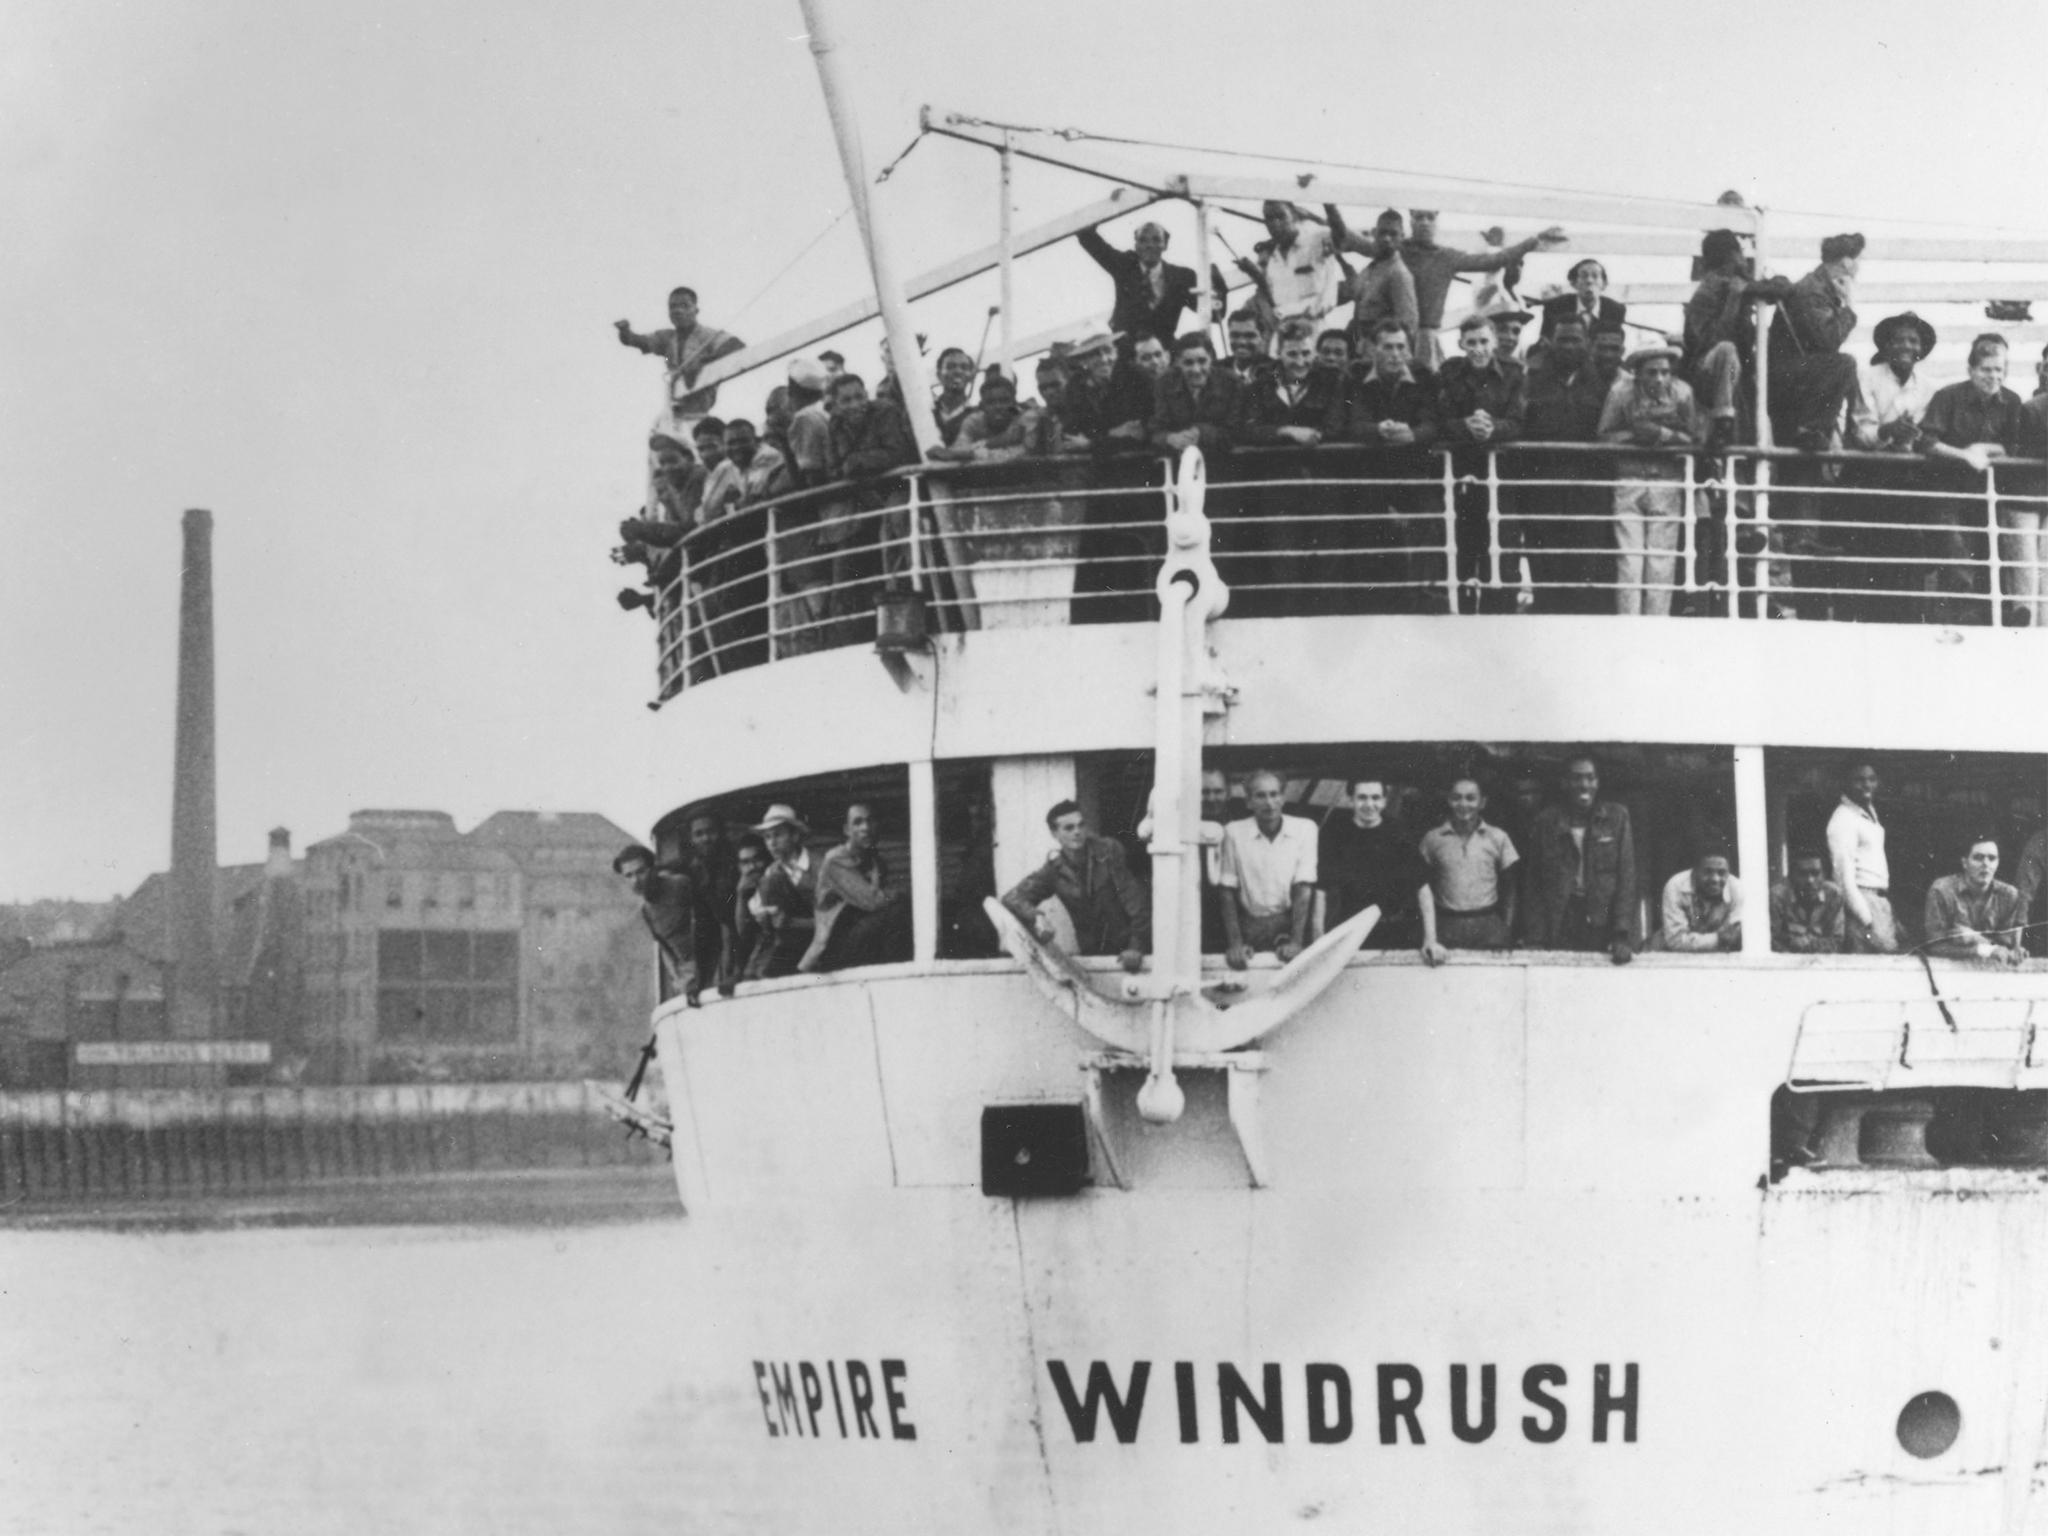 My grandfather was part of the Windrush generation and he would be shocked  by the treatment of migrants today | The Independent | The Independent